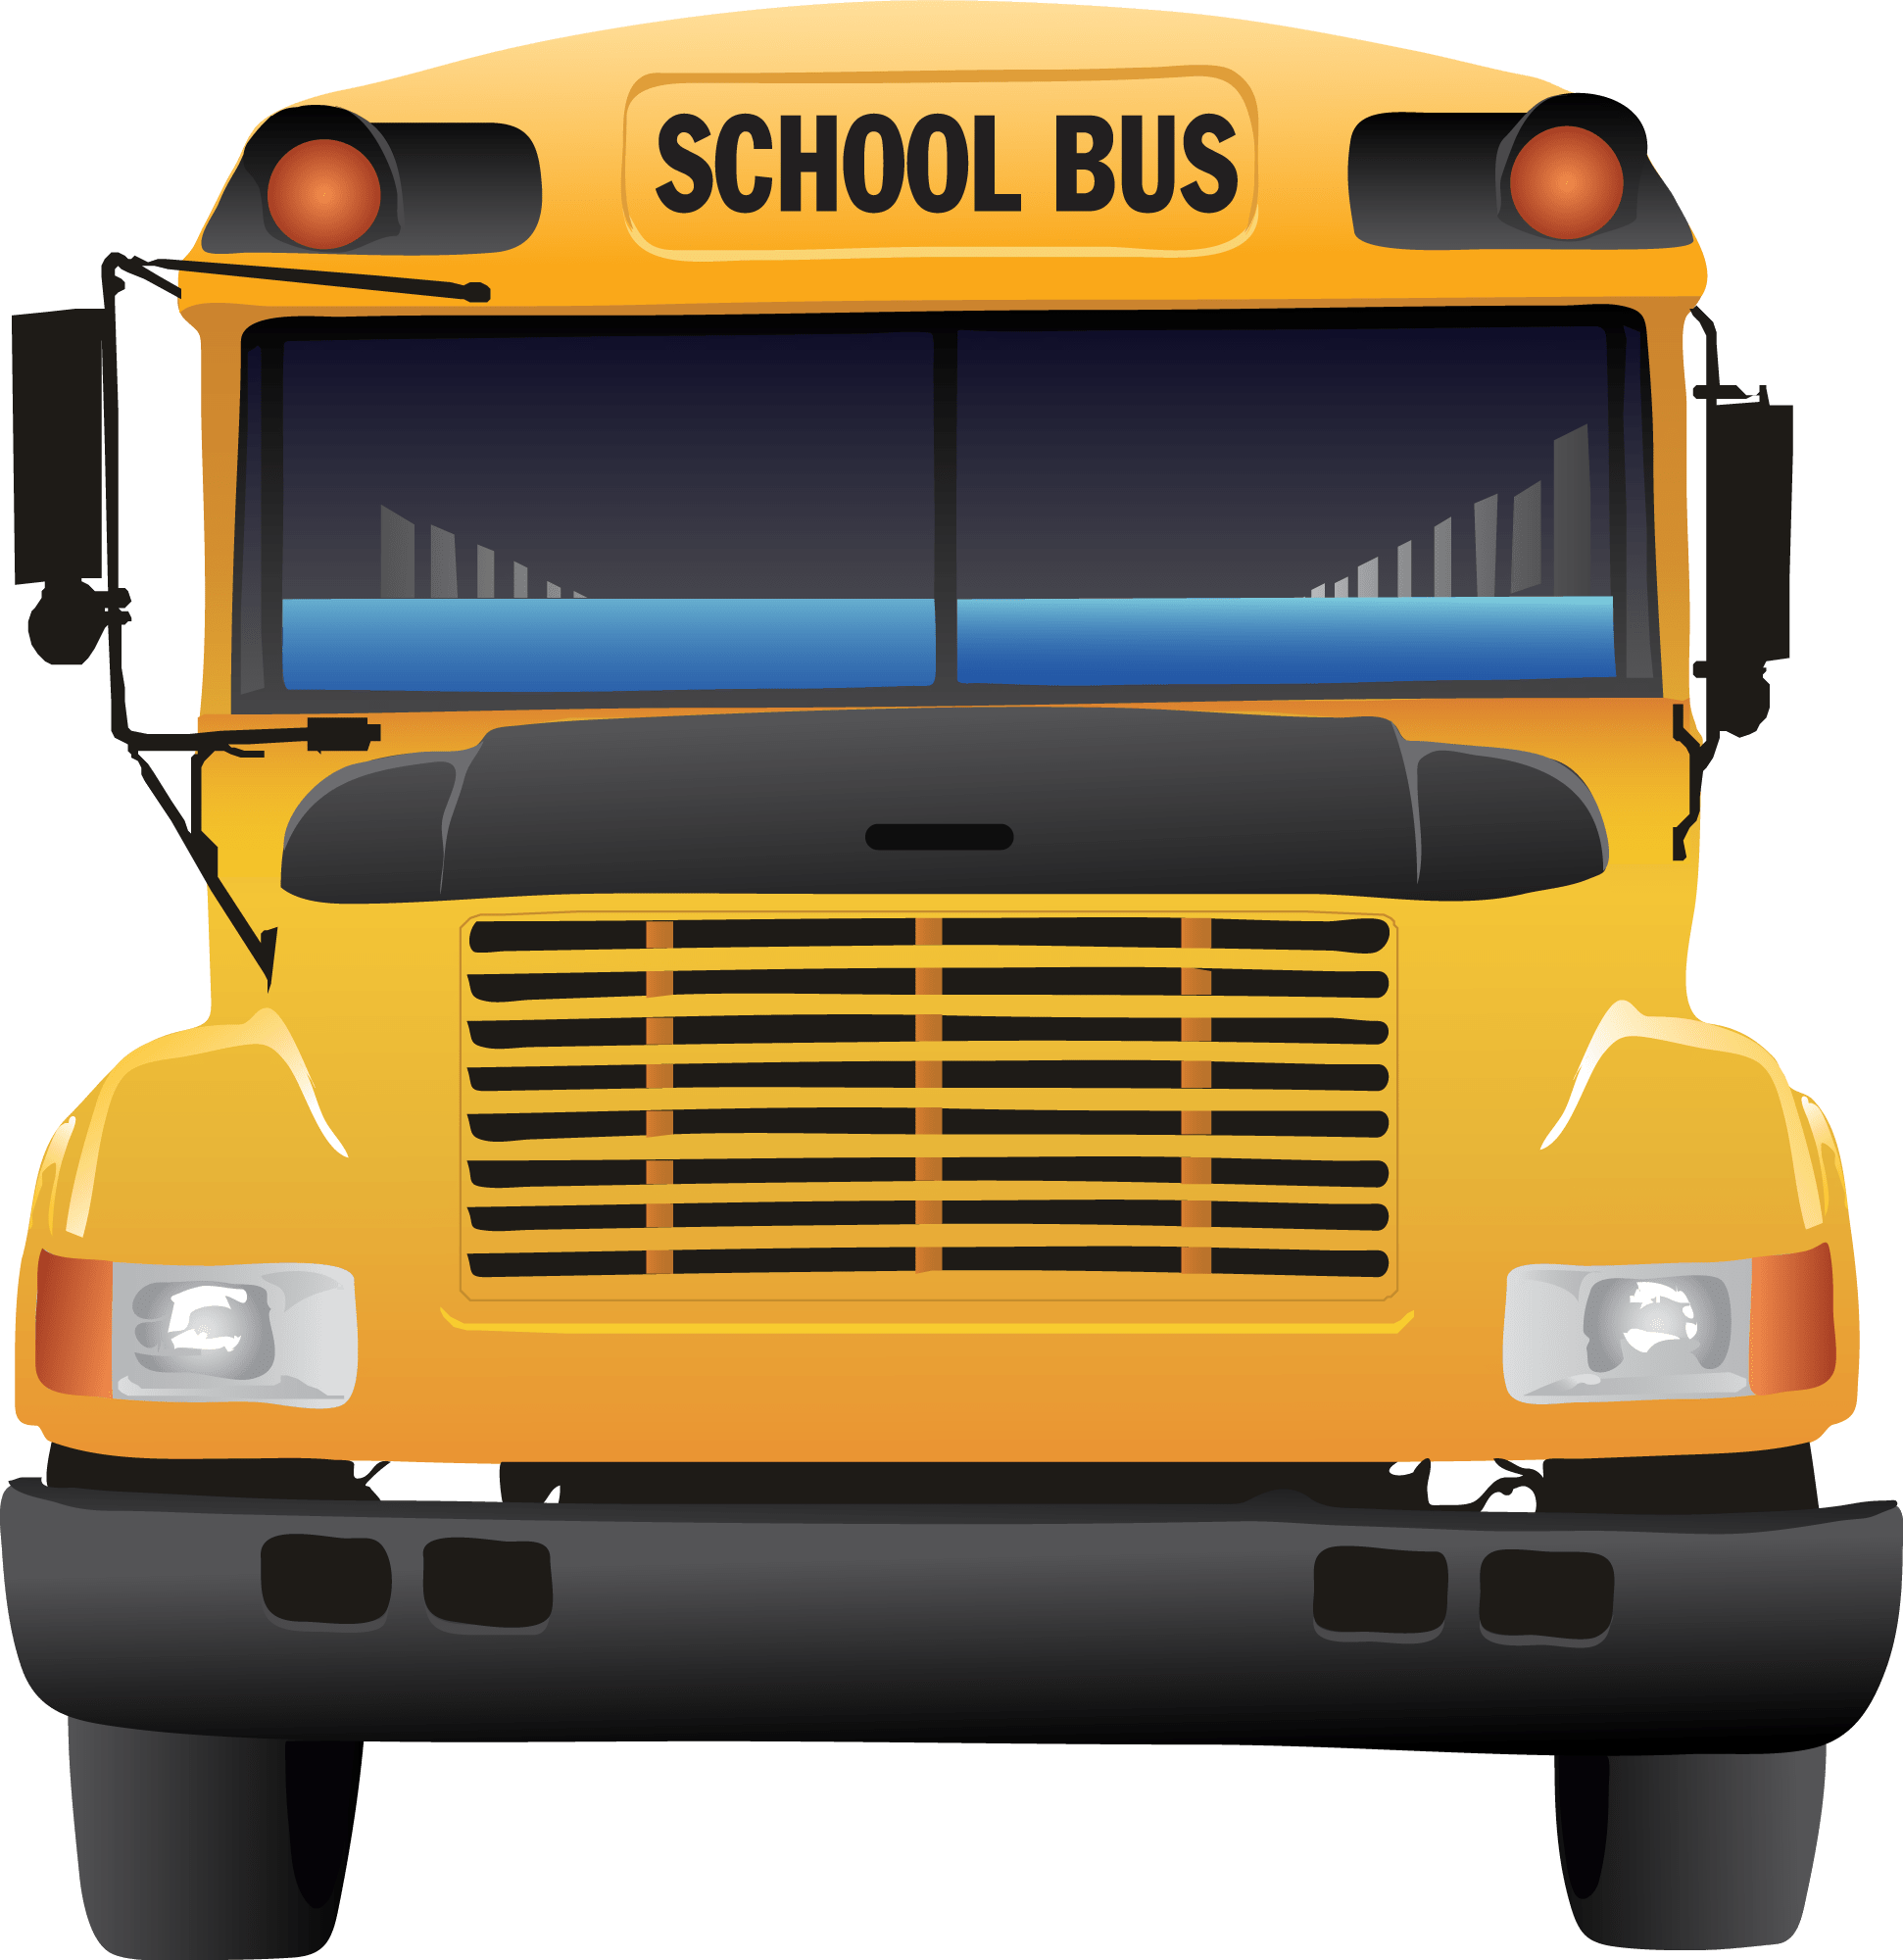 School bus clipart for kids png library 18fresh School Bus Clipart Free - Clip arts & coloring pages png library